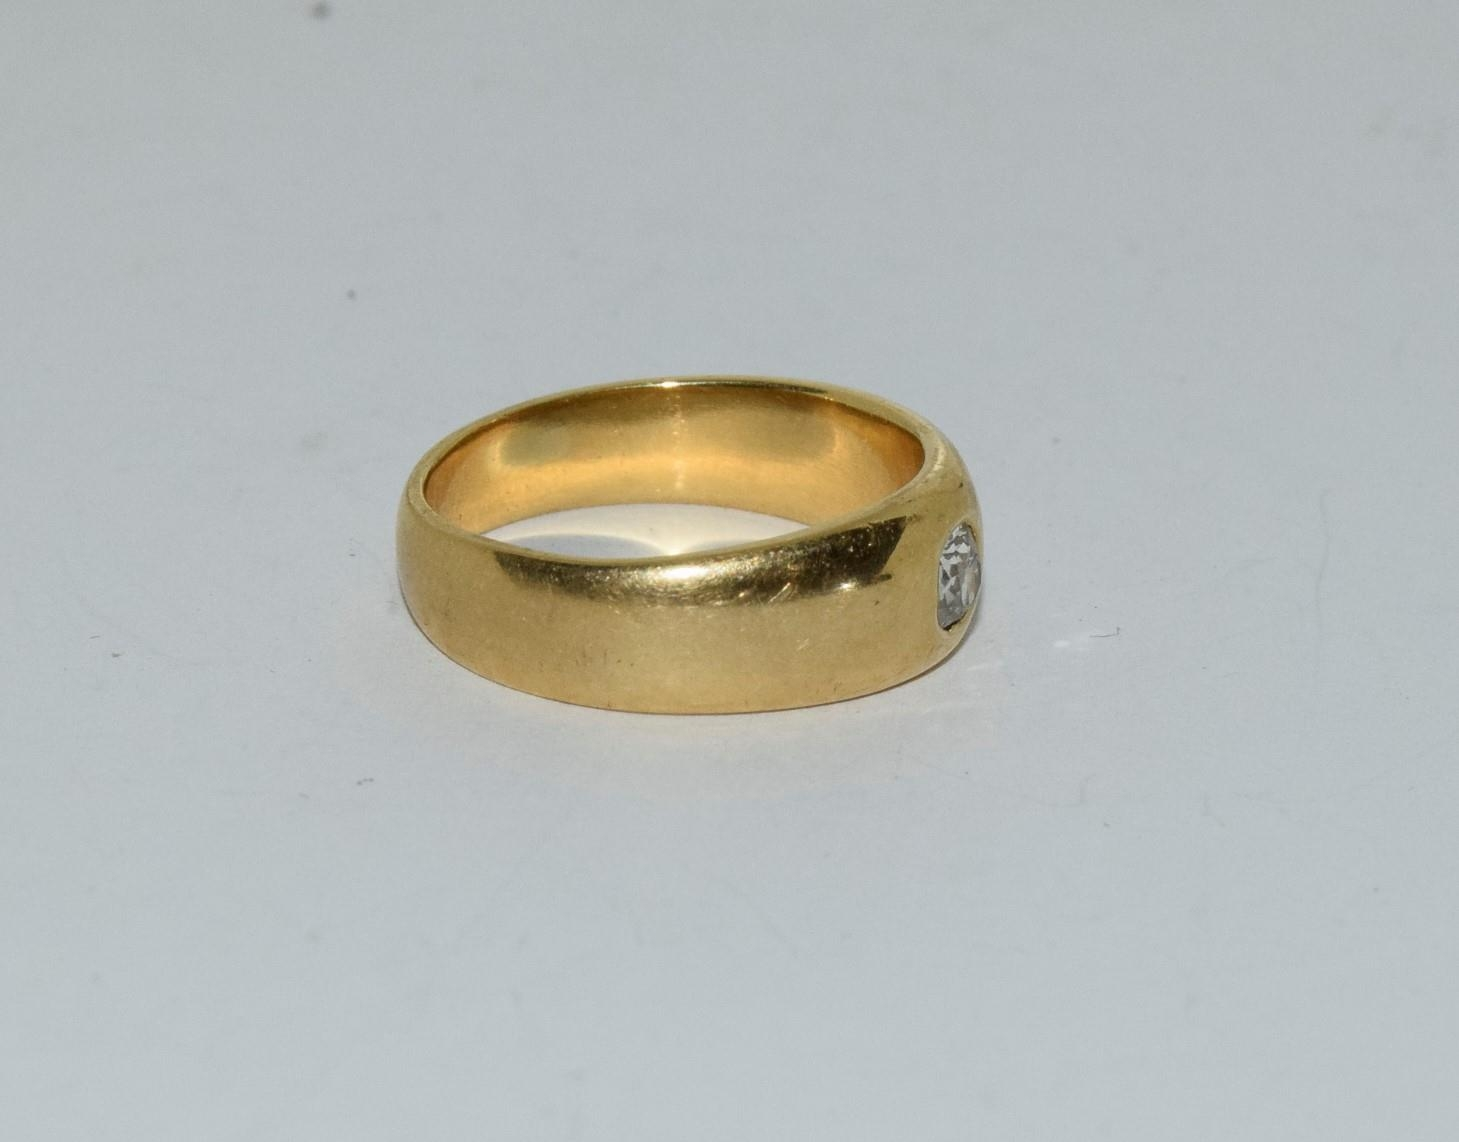 18ct gold mans signet ring set with diamond solitaire of approx 0.25ct size R 9.5gm - Image 5 of 6